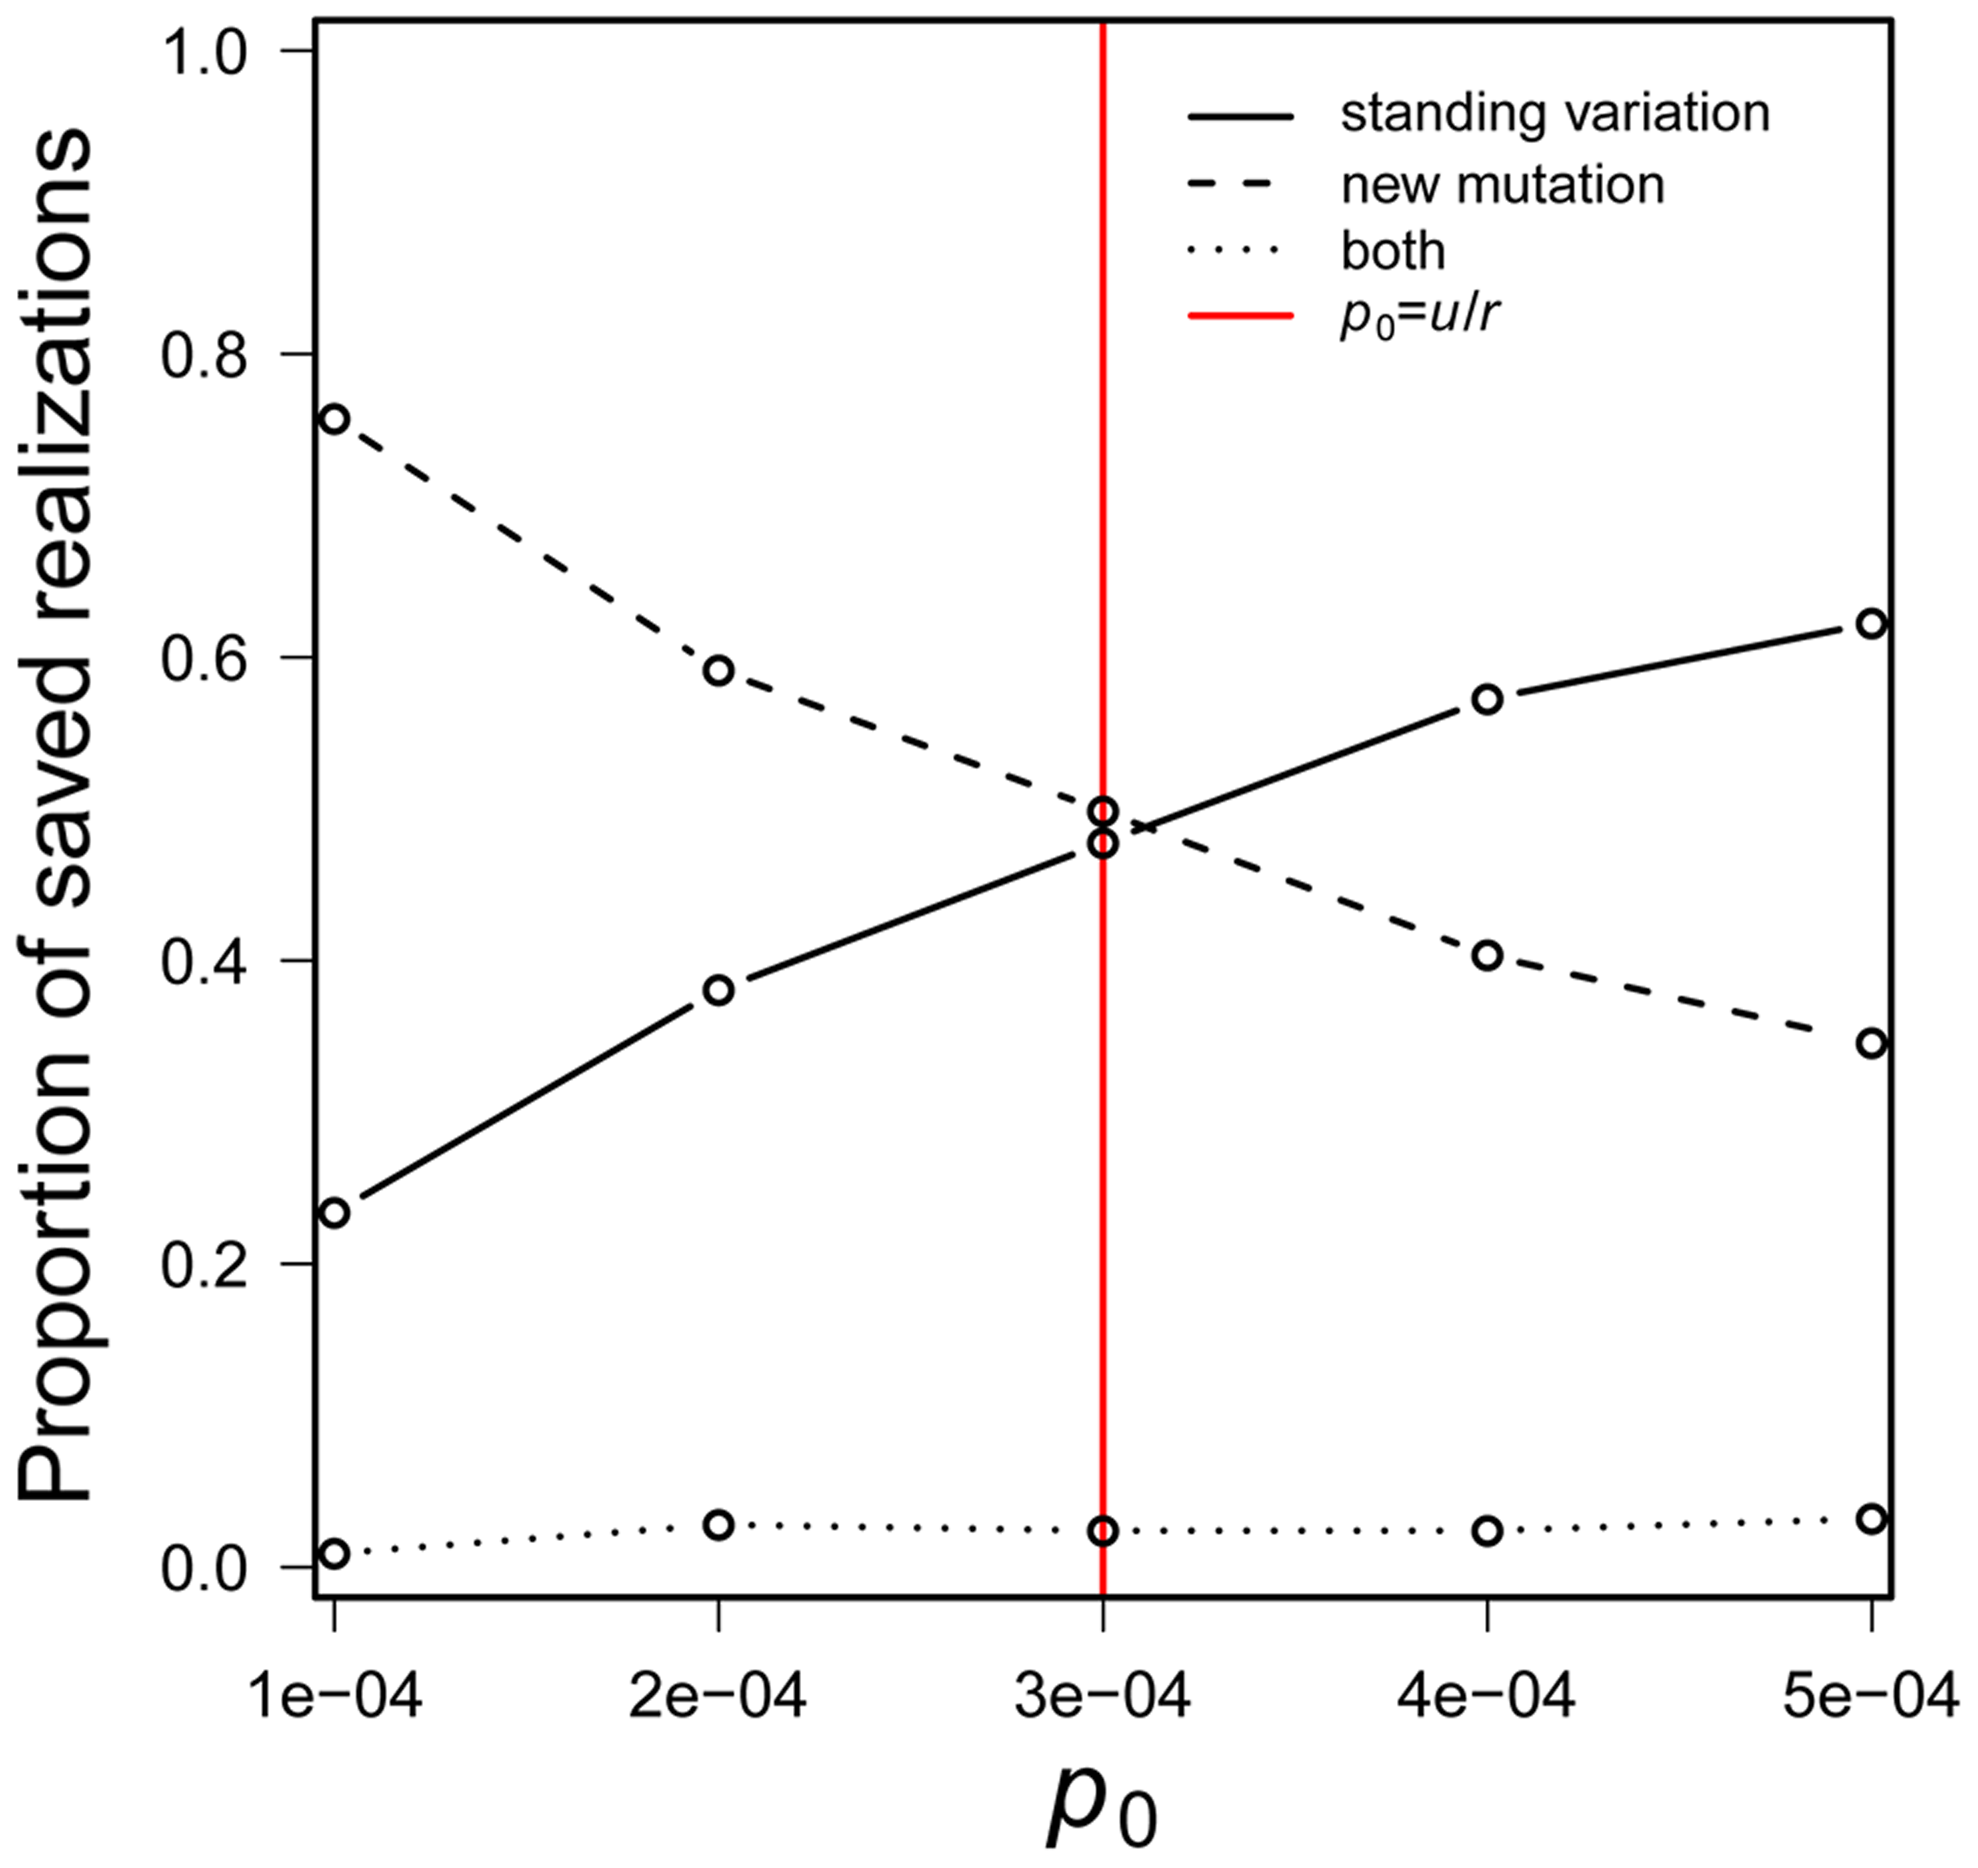 The probability that a population is saved by new mutation <i>versus</i> standing genetic variation.